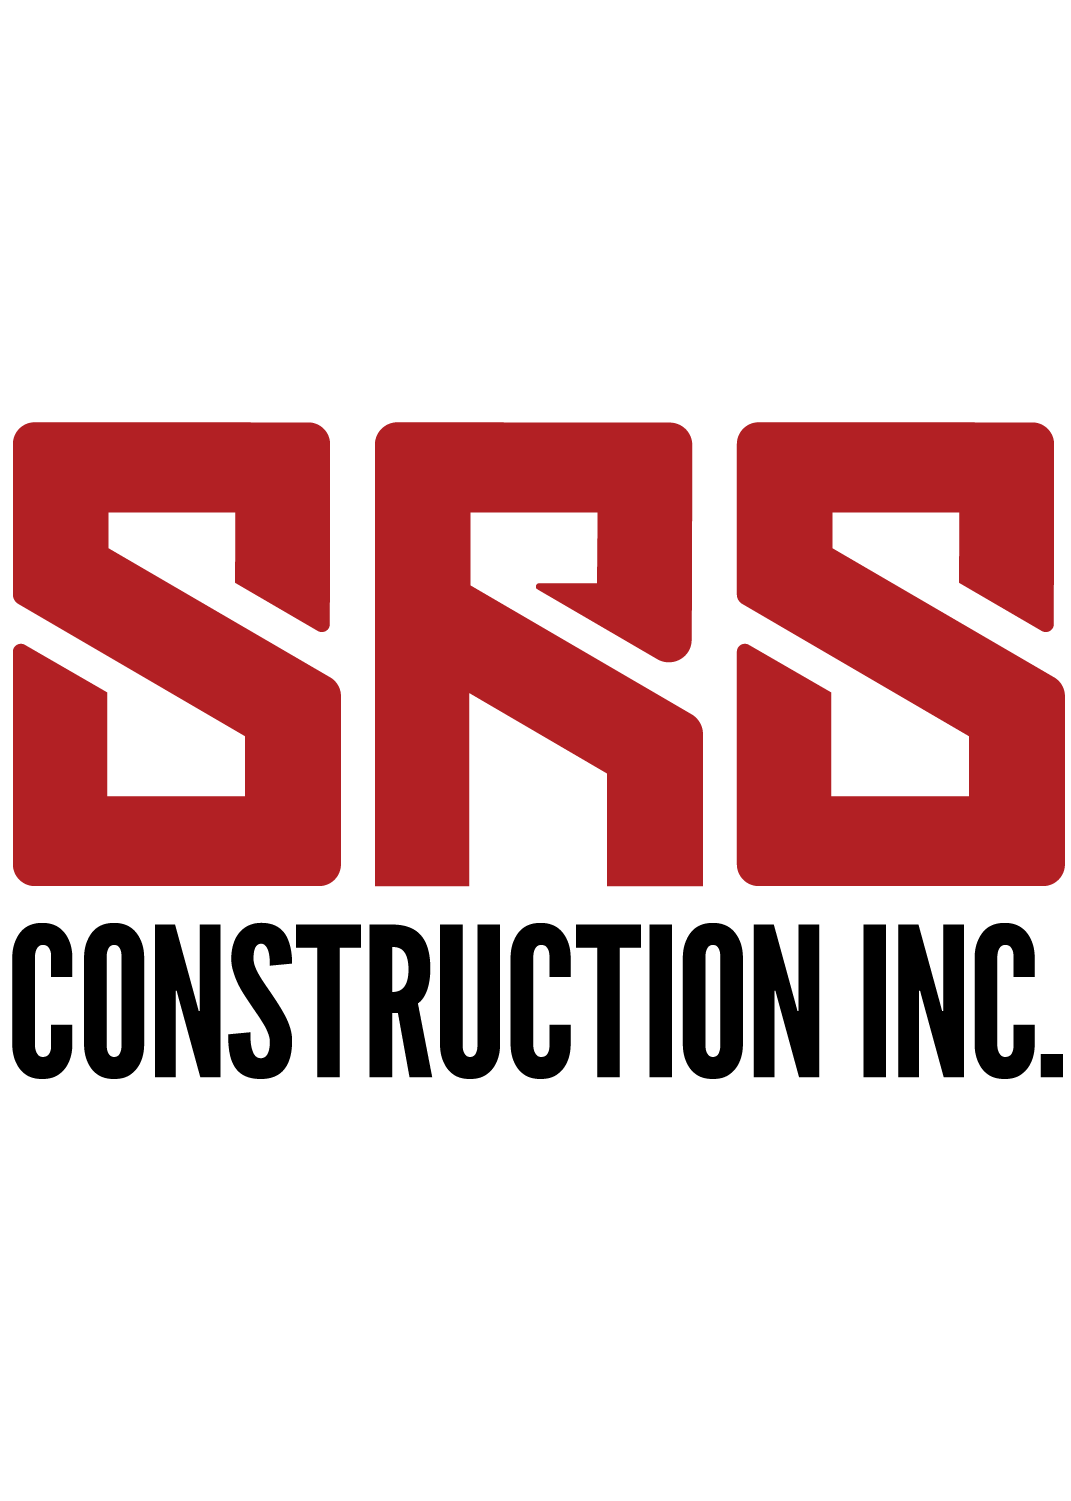 SRS Construction INC.